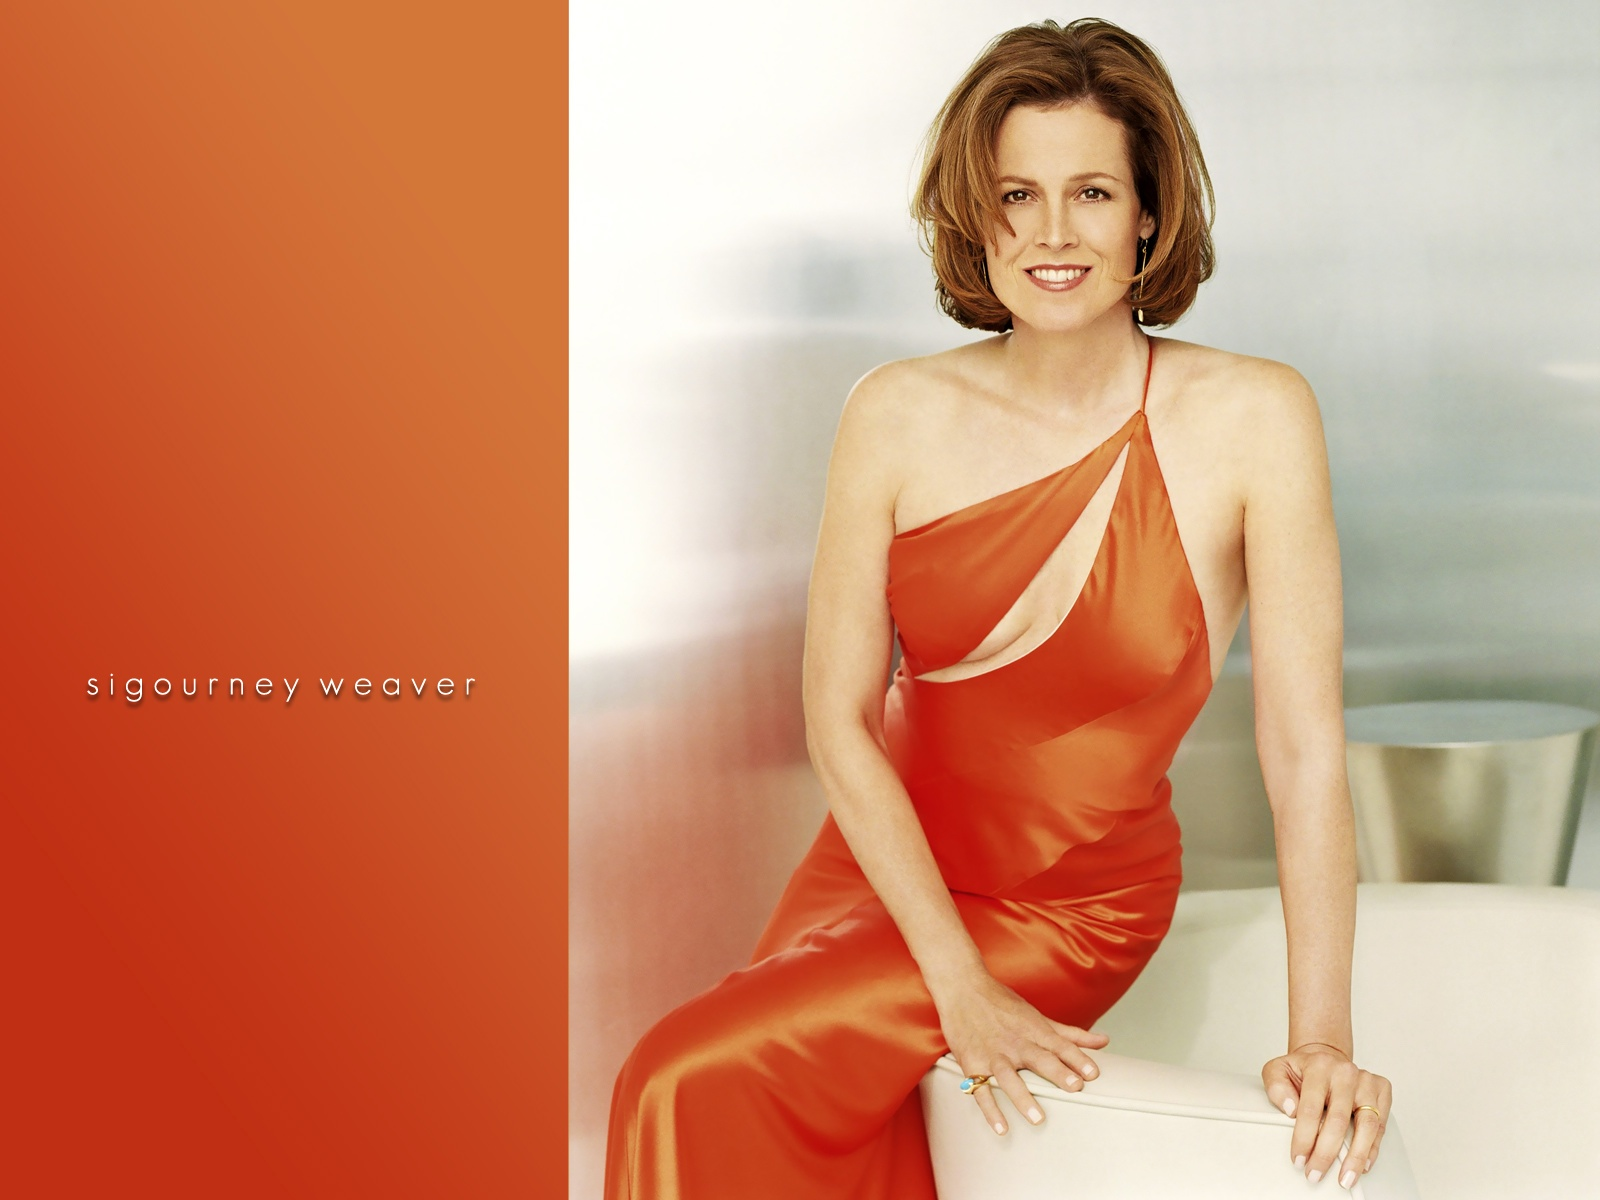 Sigourney Weaver images Sigourney Weaver HD wallpaper and background ...